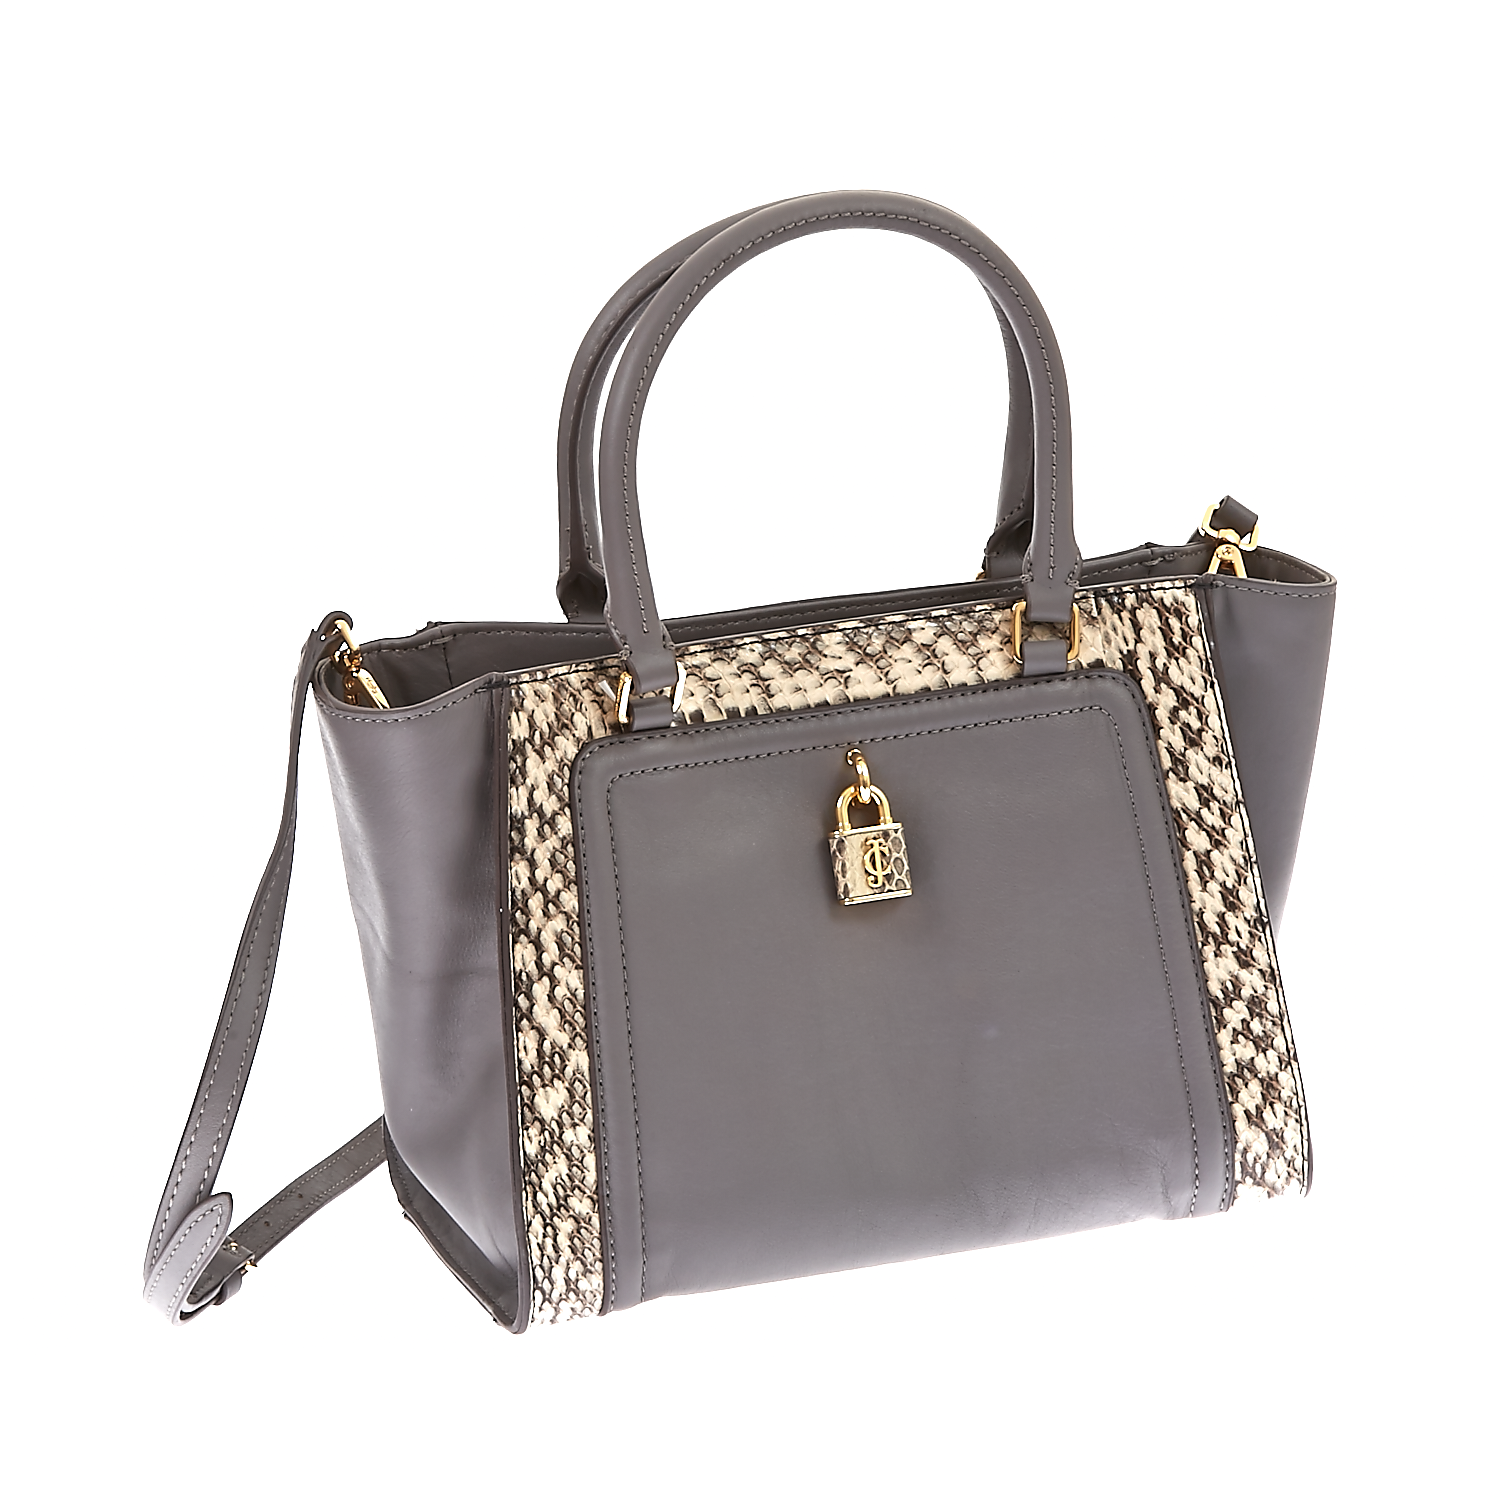 JUICY COUTURE – Δερμάτινη τσάντα Juicy Couture γκρι 1434596.0-0000